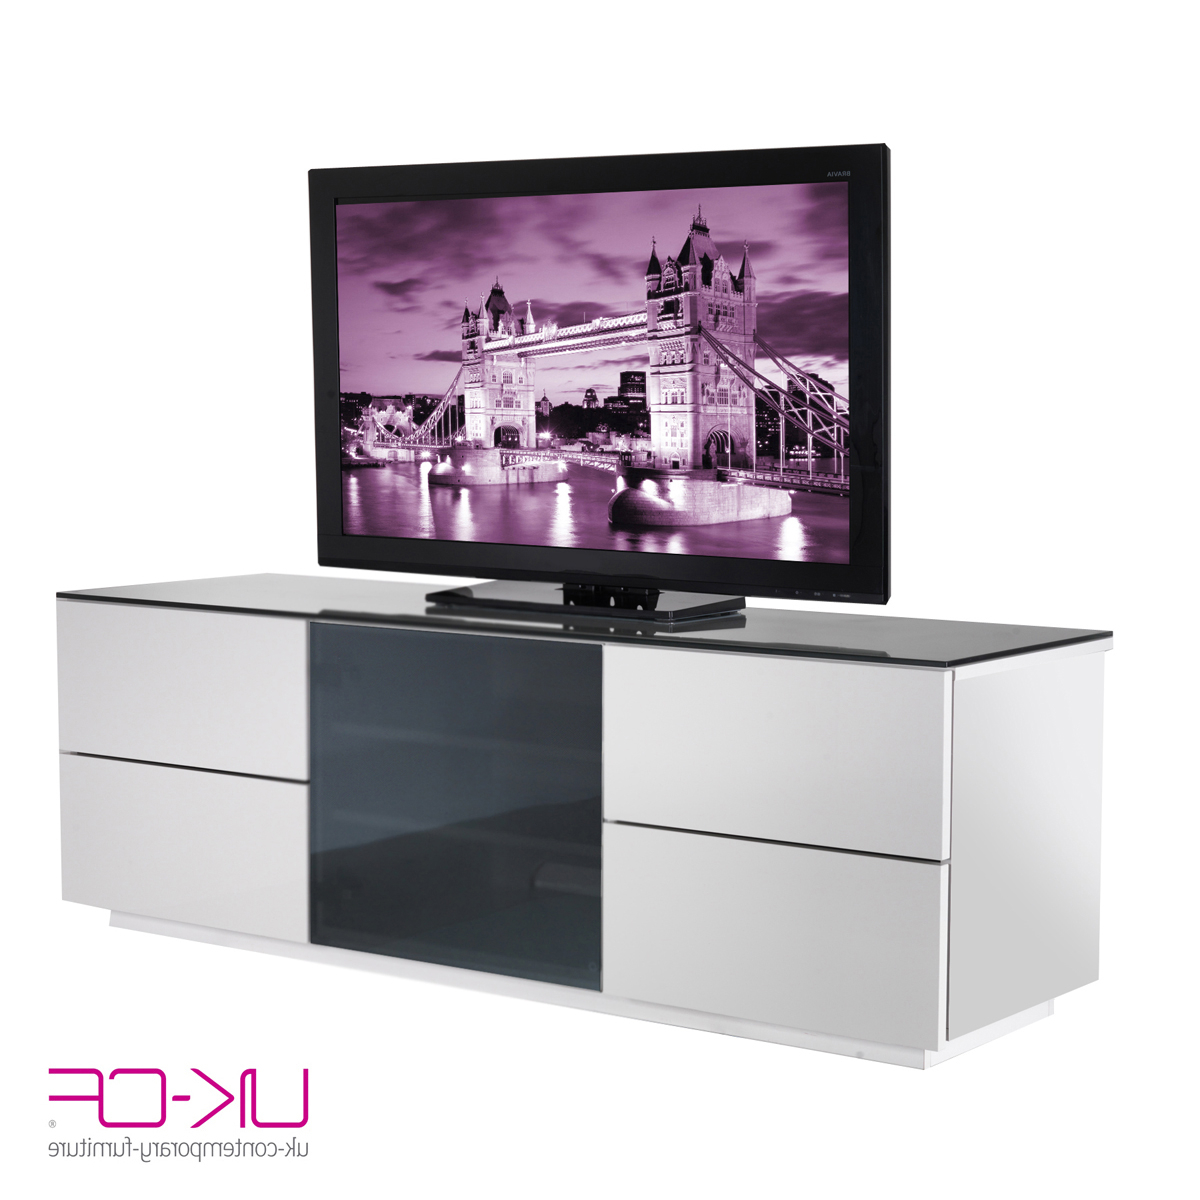 2017 Cream High Gloss Tv Cabinets For Ukcf London Designer High Gloss White Tv Stand With Black Glass Door (View 1 of 20)